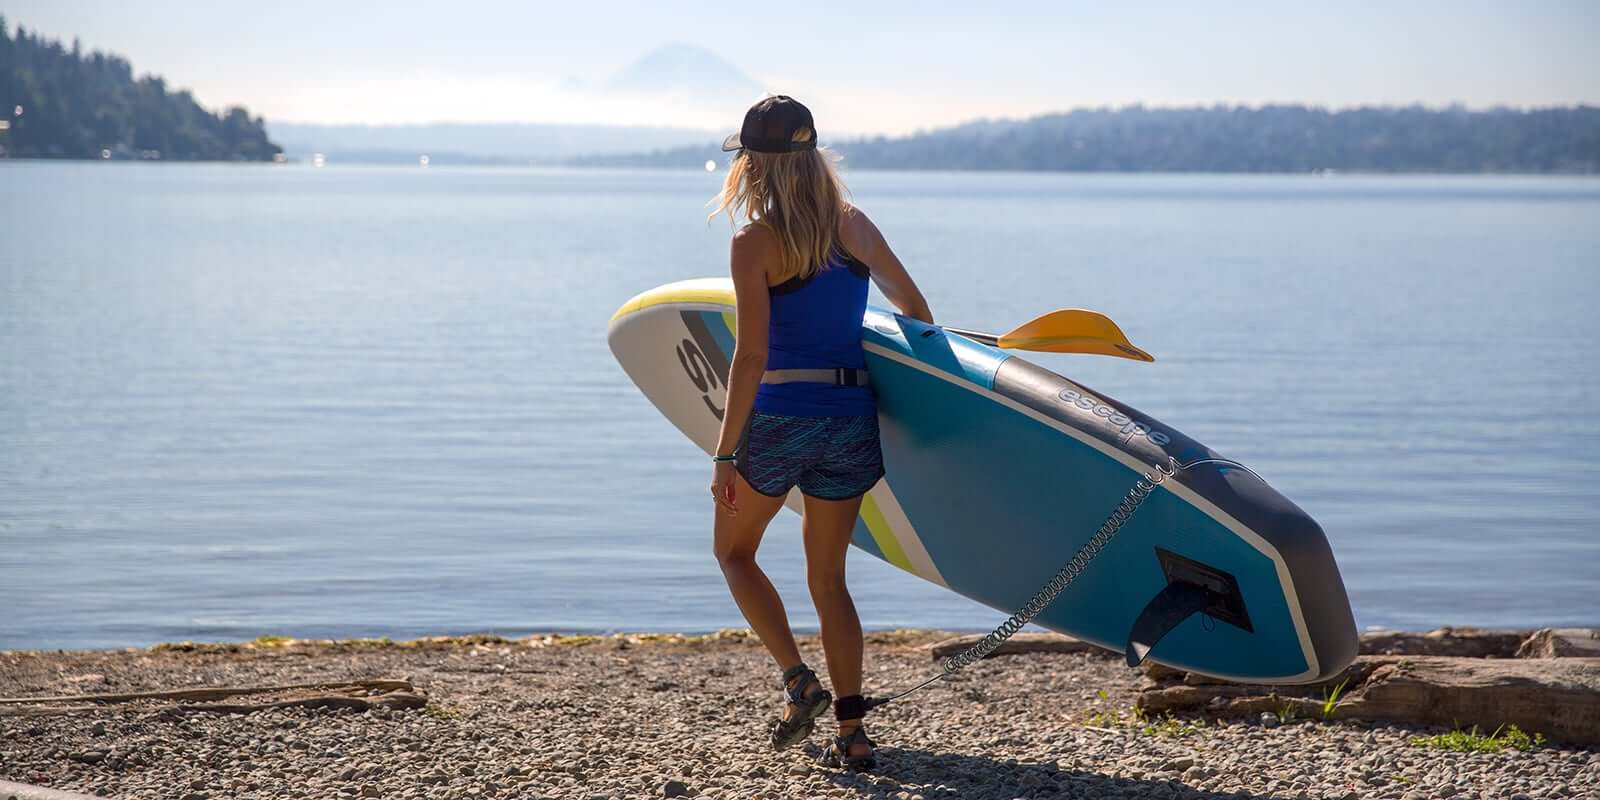 Best Inflatable Stand Up Paddle Boards